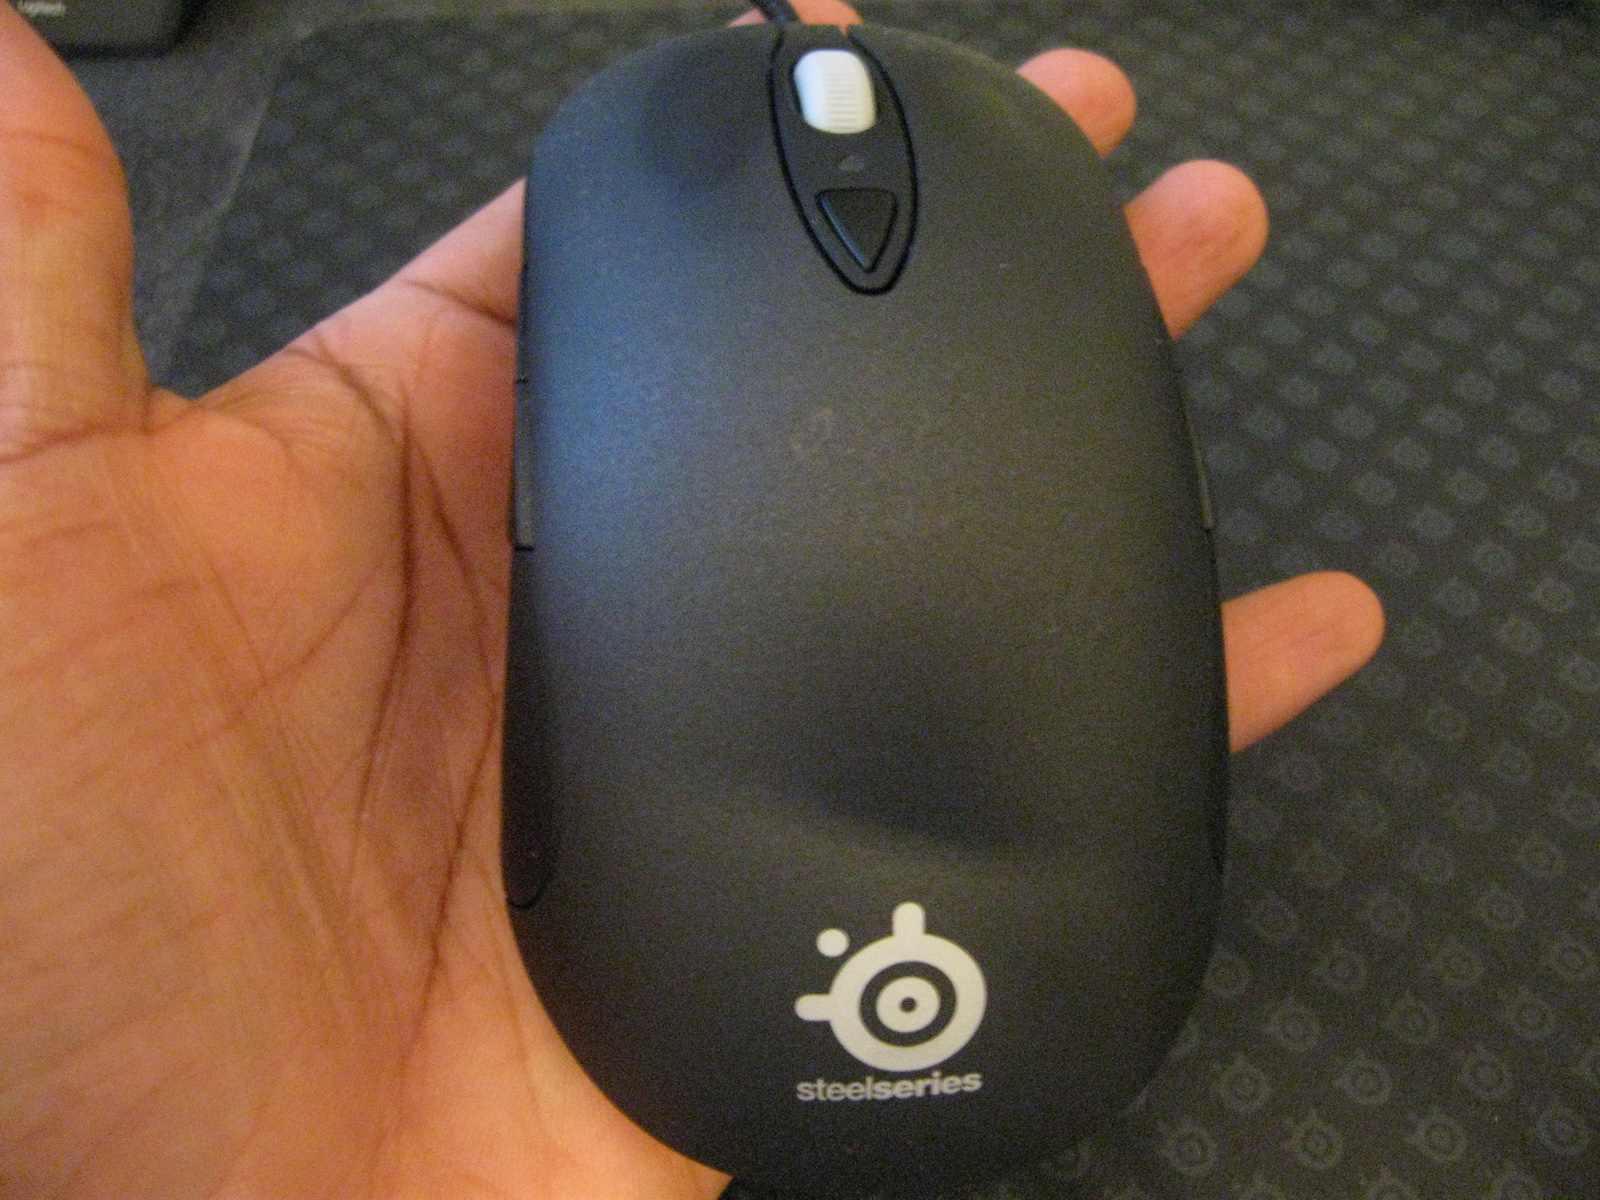 Steelseries XAI laser mouse